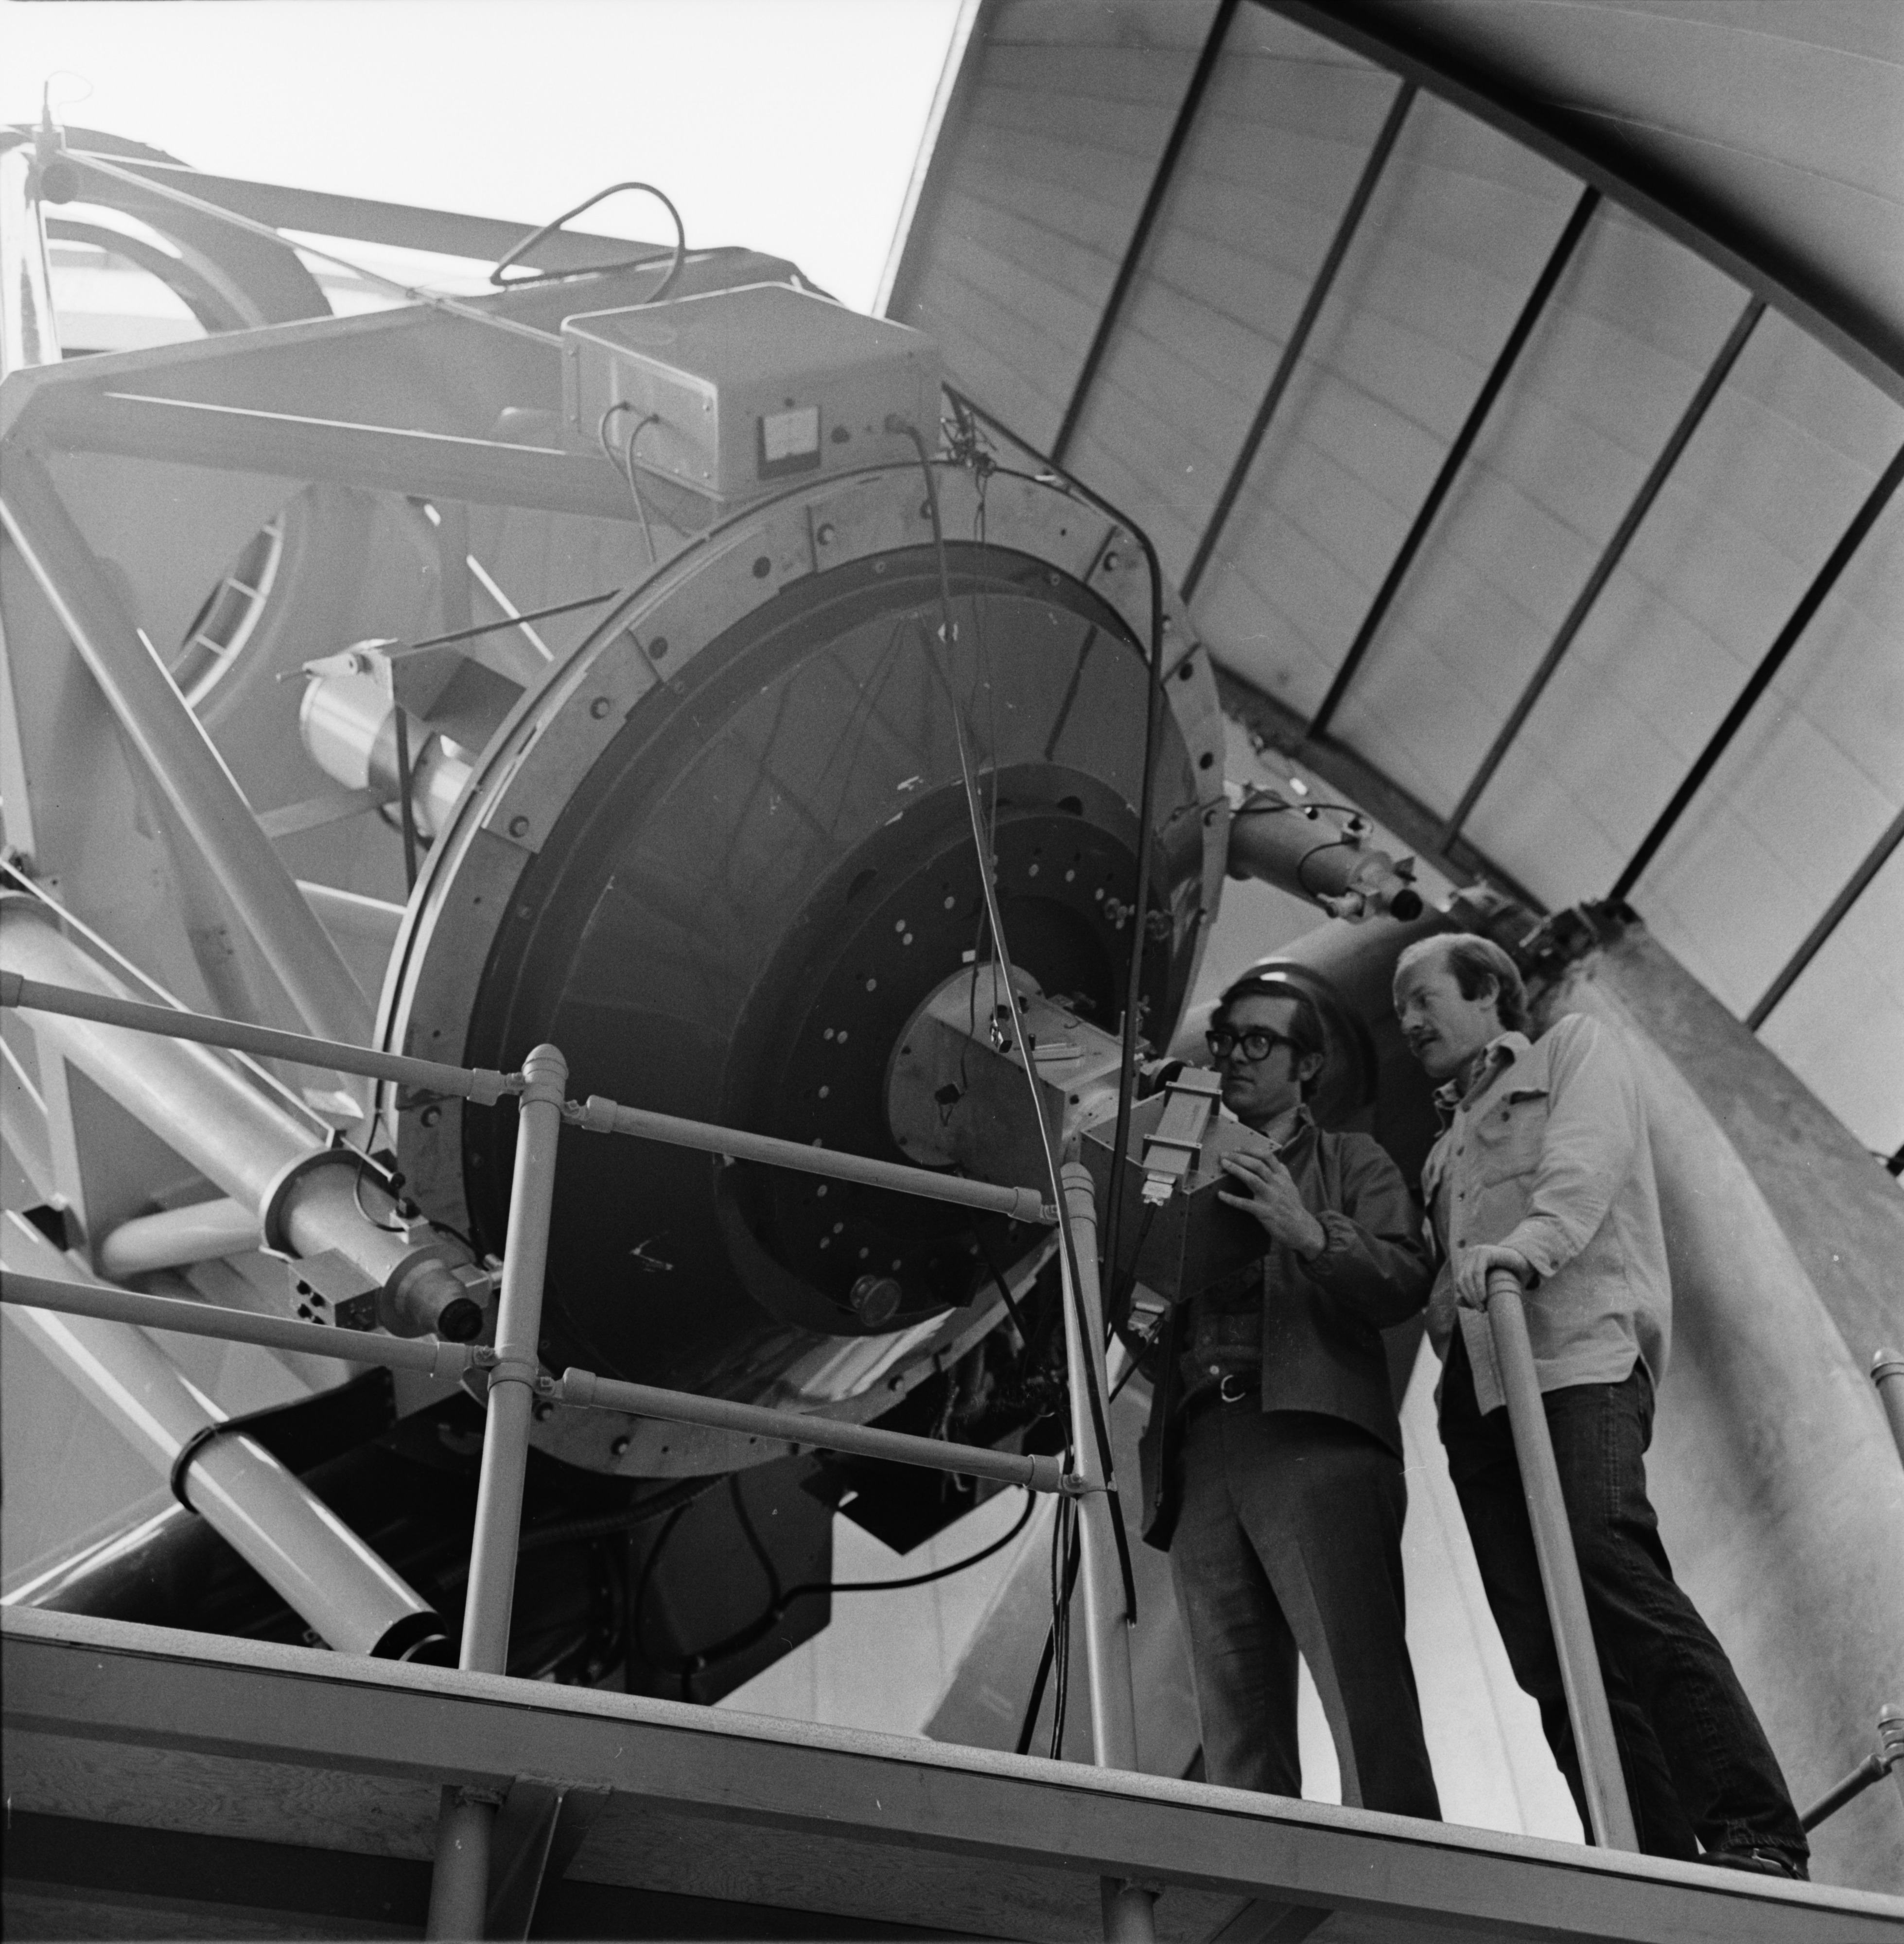 Dr. William L. Williams and Larry D. Petro, of the U-M Astronomy and Physics departments, work together at Stinchfield Woods Observatory, May 1972 image